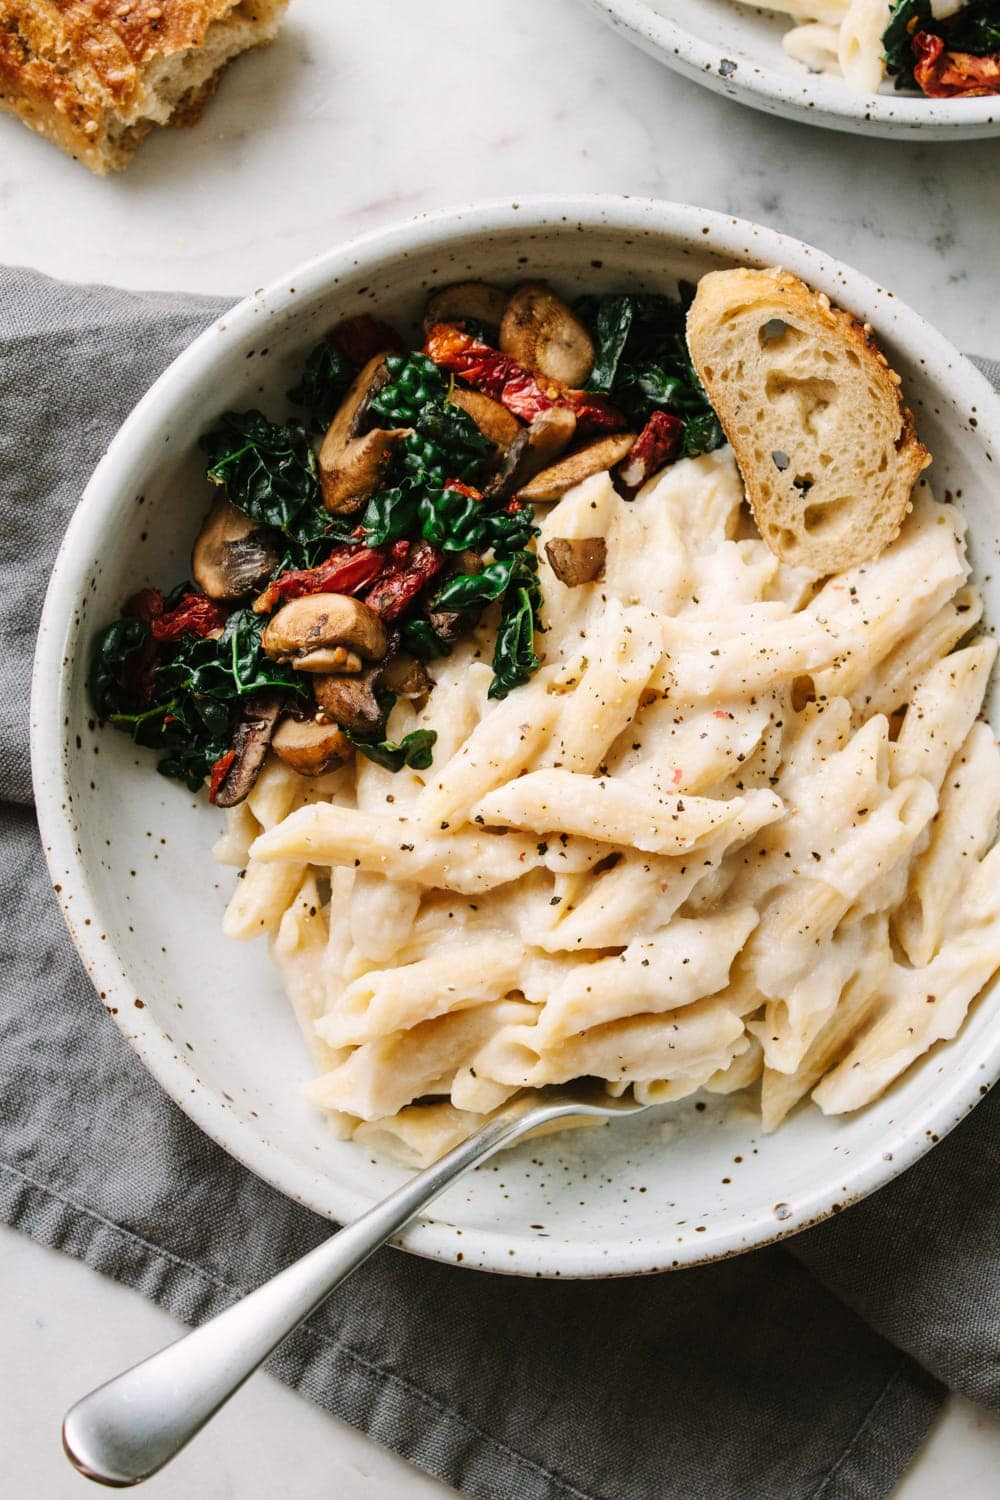 vegan white bean cauliflower alfredo sauce with penne pasta in a bowl with sauteed kale, mushrooms and sun-dried tomatoes.